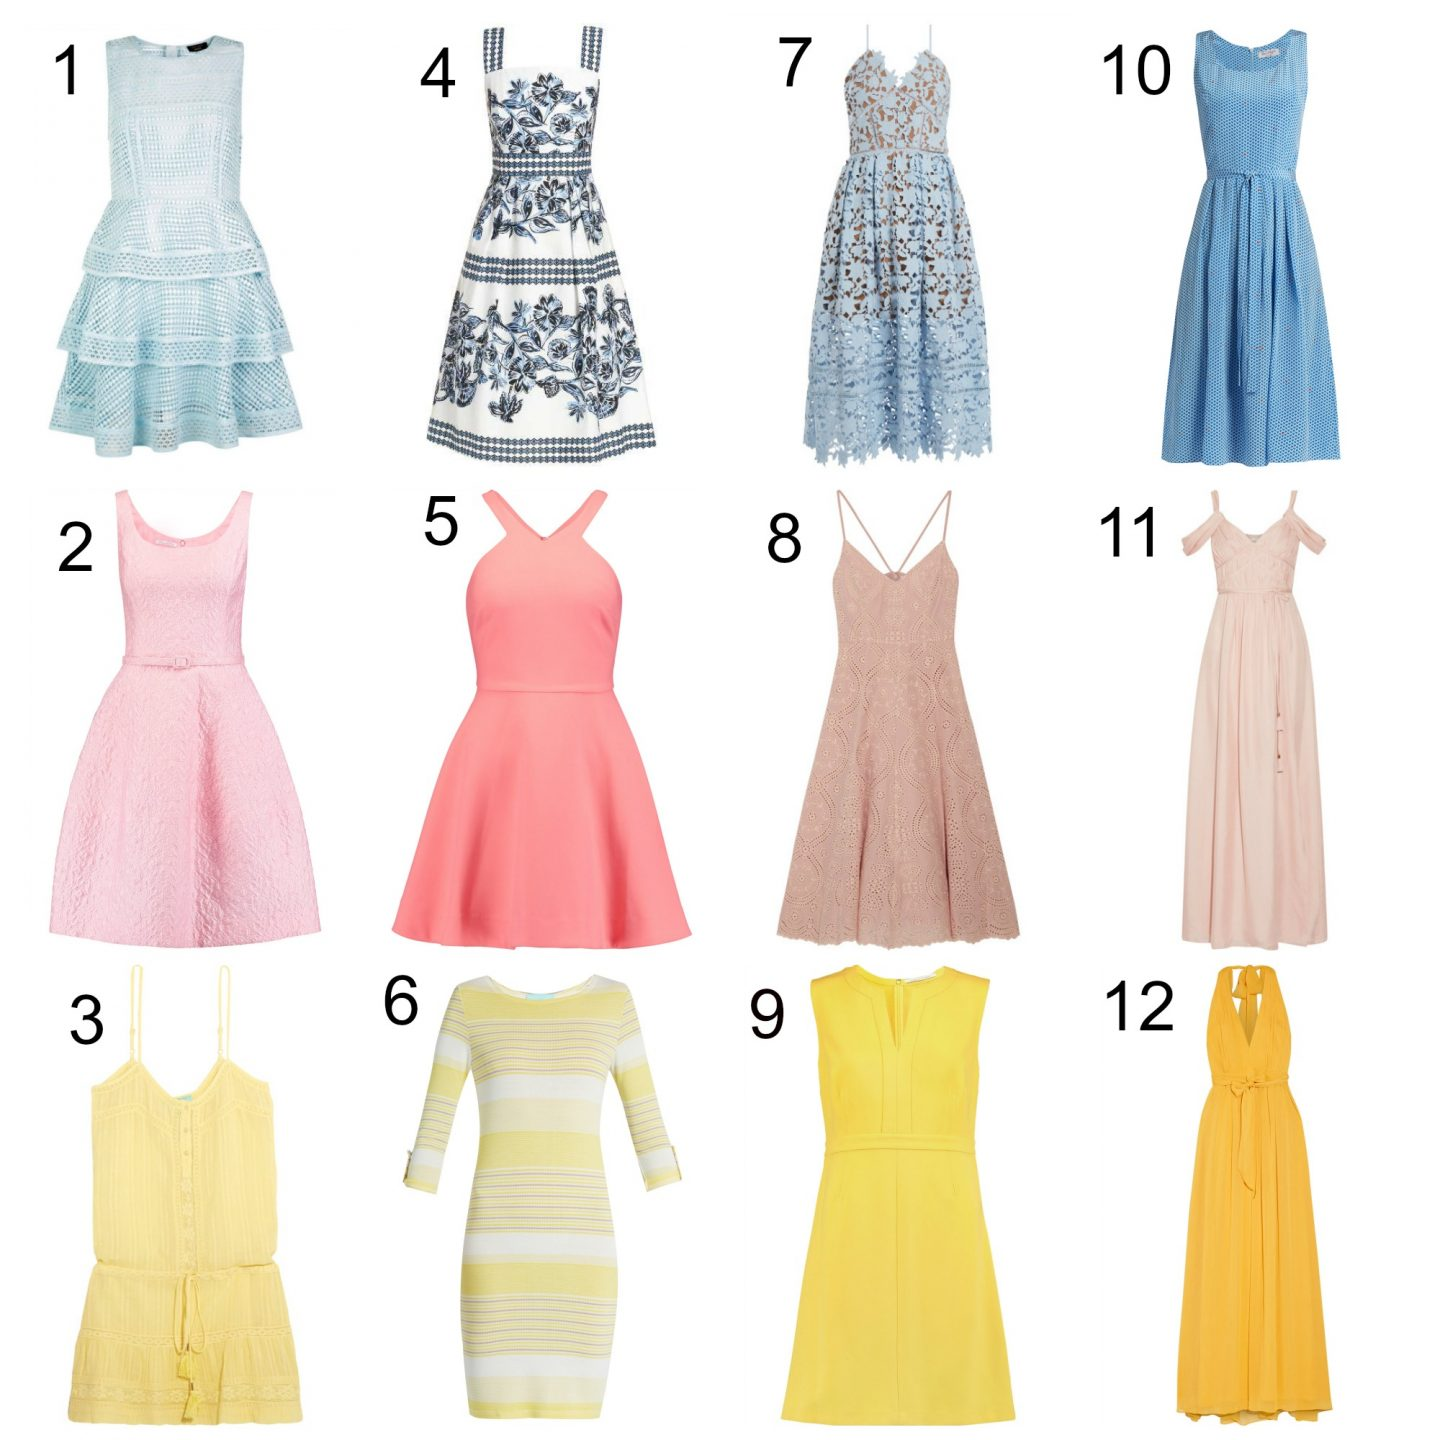 Summer Dress Round Up